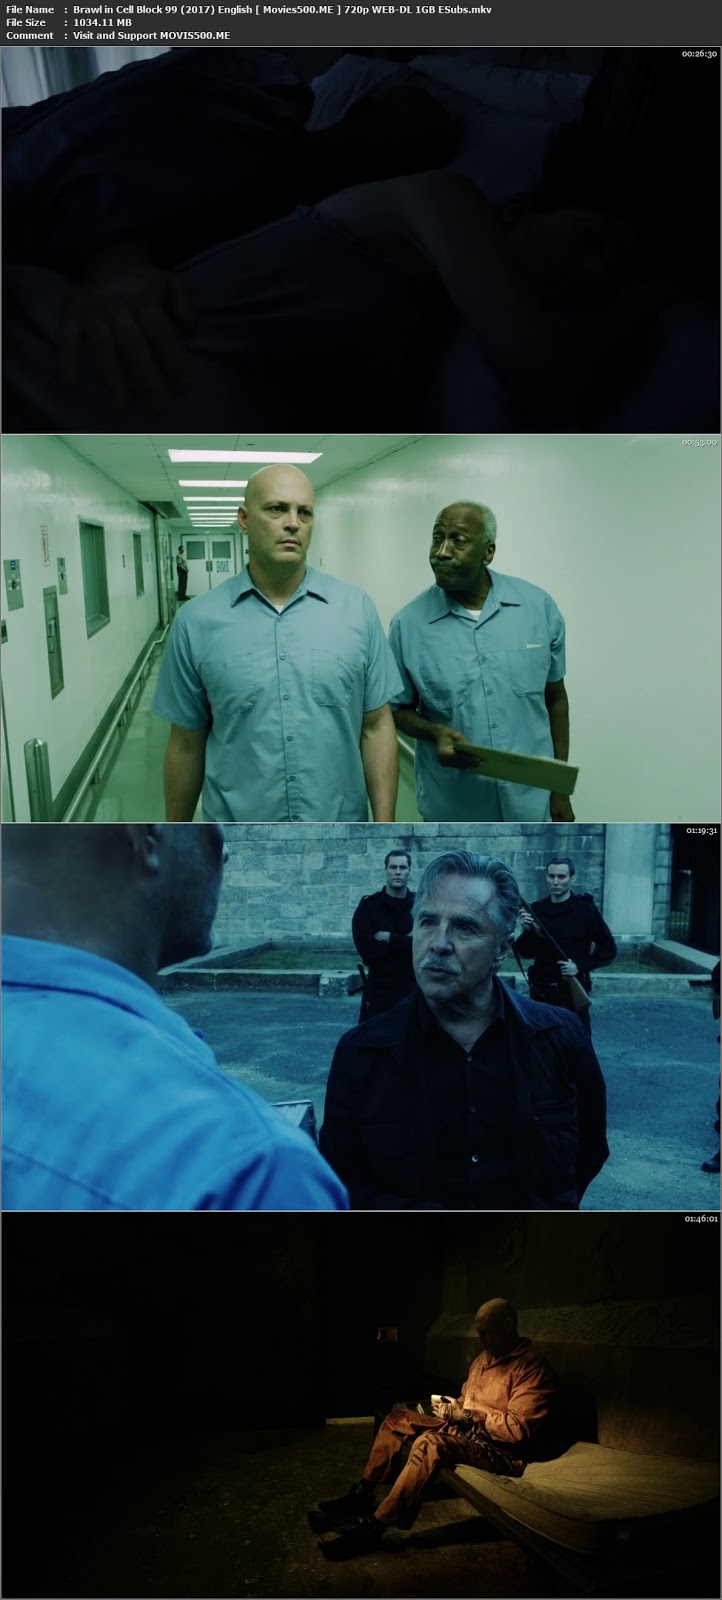 Brawl in Cell Block 99 2017 English WEB DL 720p ESubs 1GB at movies500.site